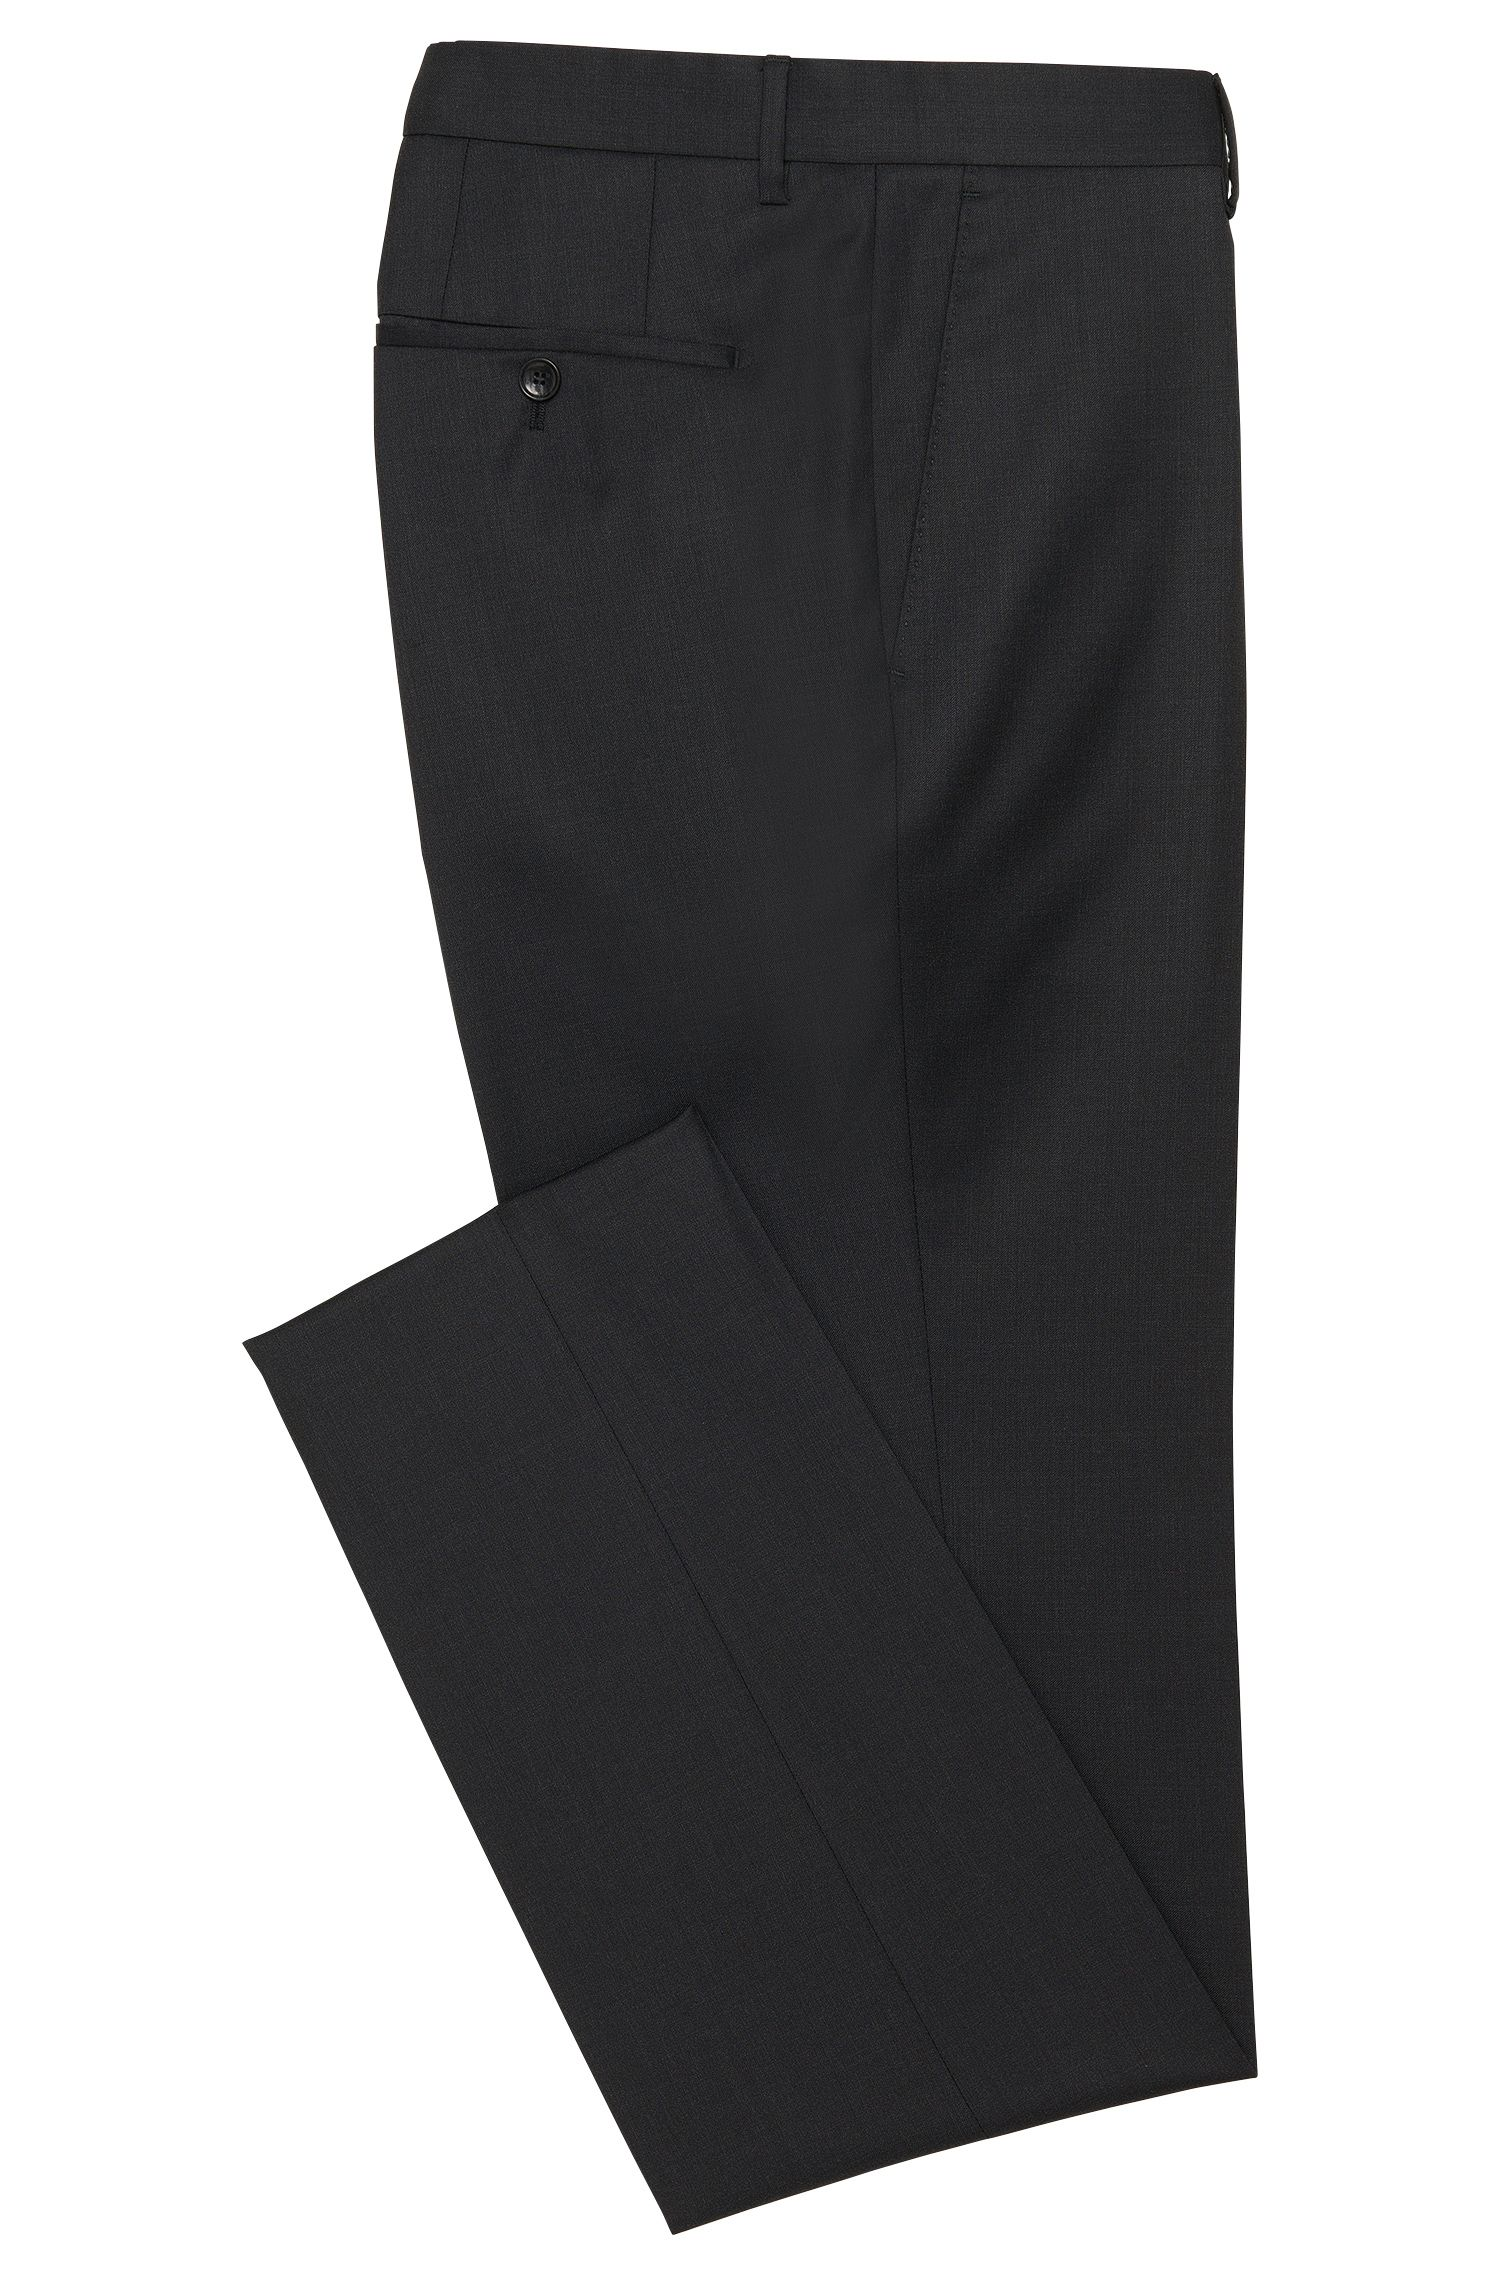 Pantalon Slim Fit Tailored uni en pure laine vierge : « T-Glover1 »